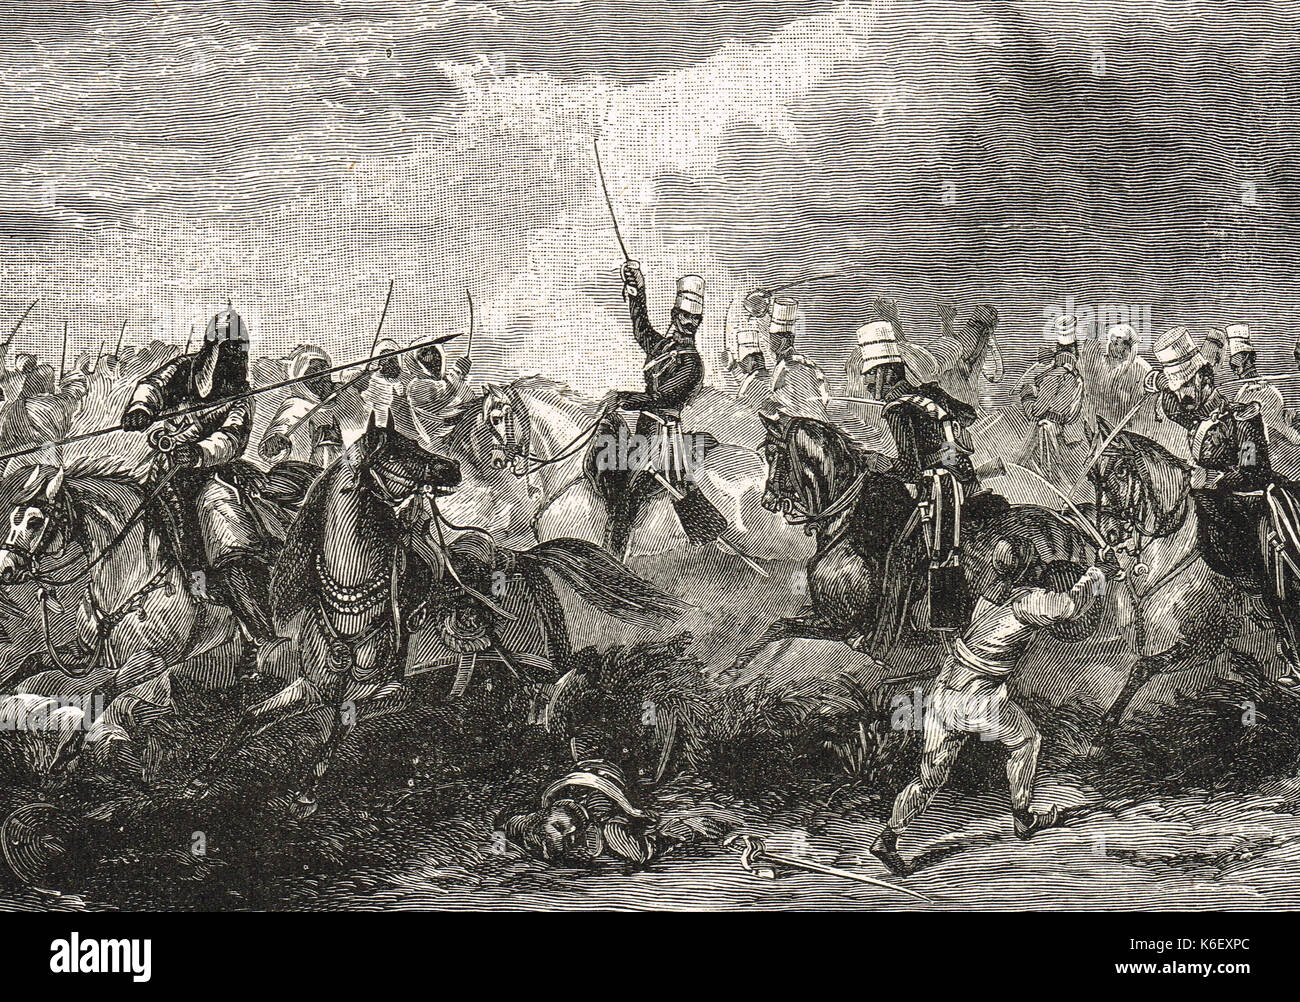 Battle of Chillianwala, charge of the 3rd King's Own Light Dragoons, January 1849, Second Anglo-Sikh War, Punjab, India - Stock Image